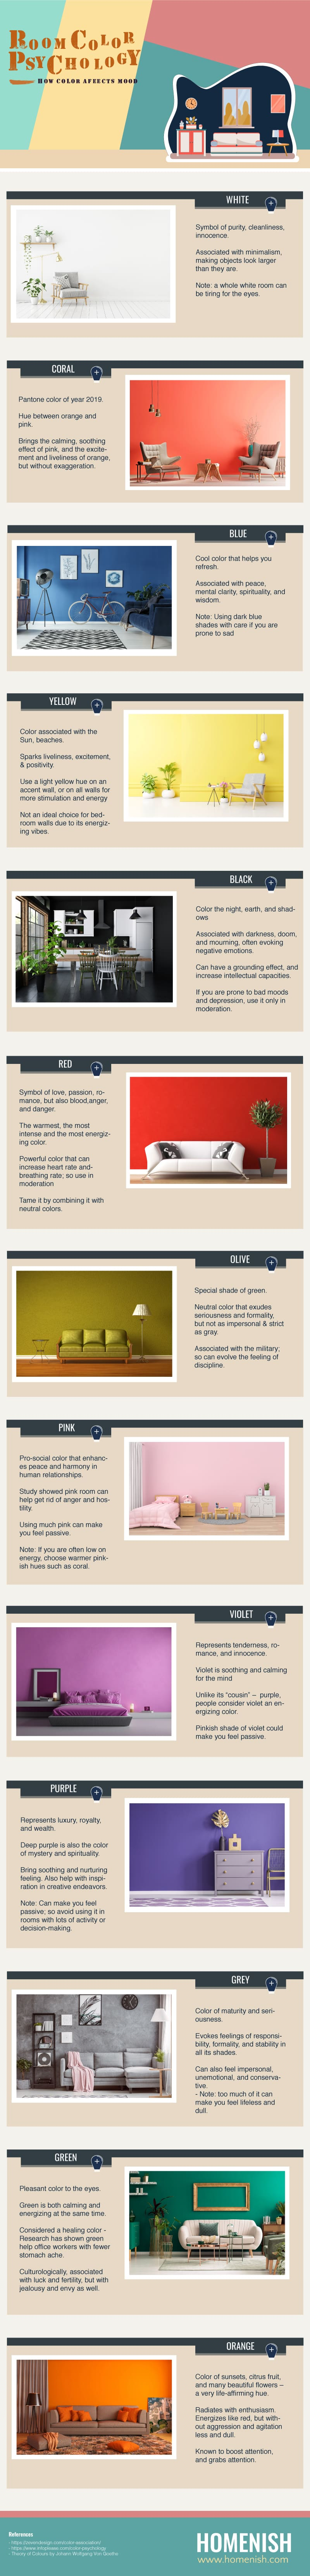 Room Color Psychology Infographic